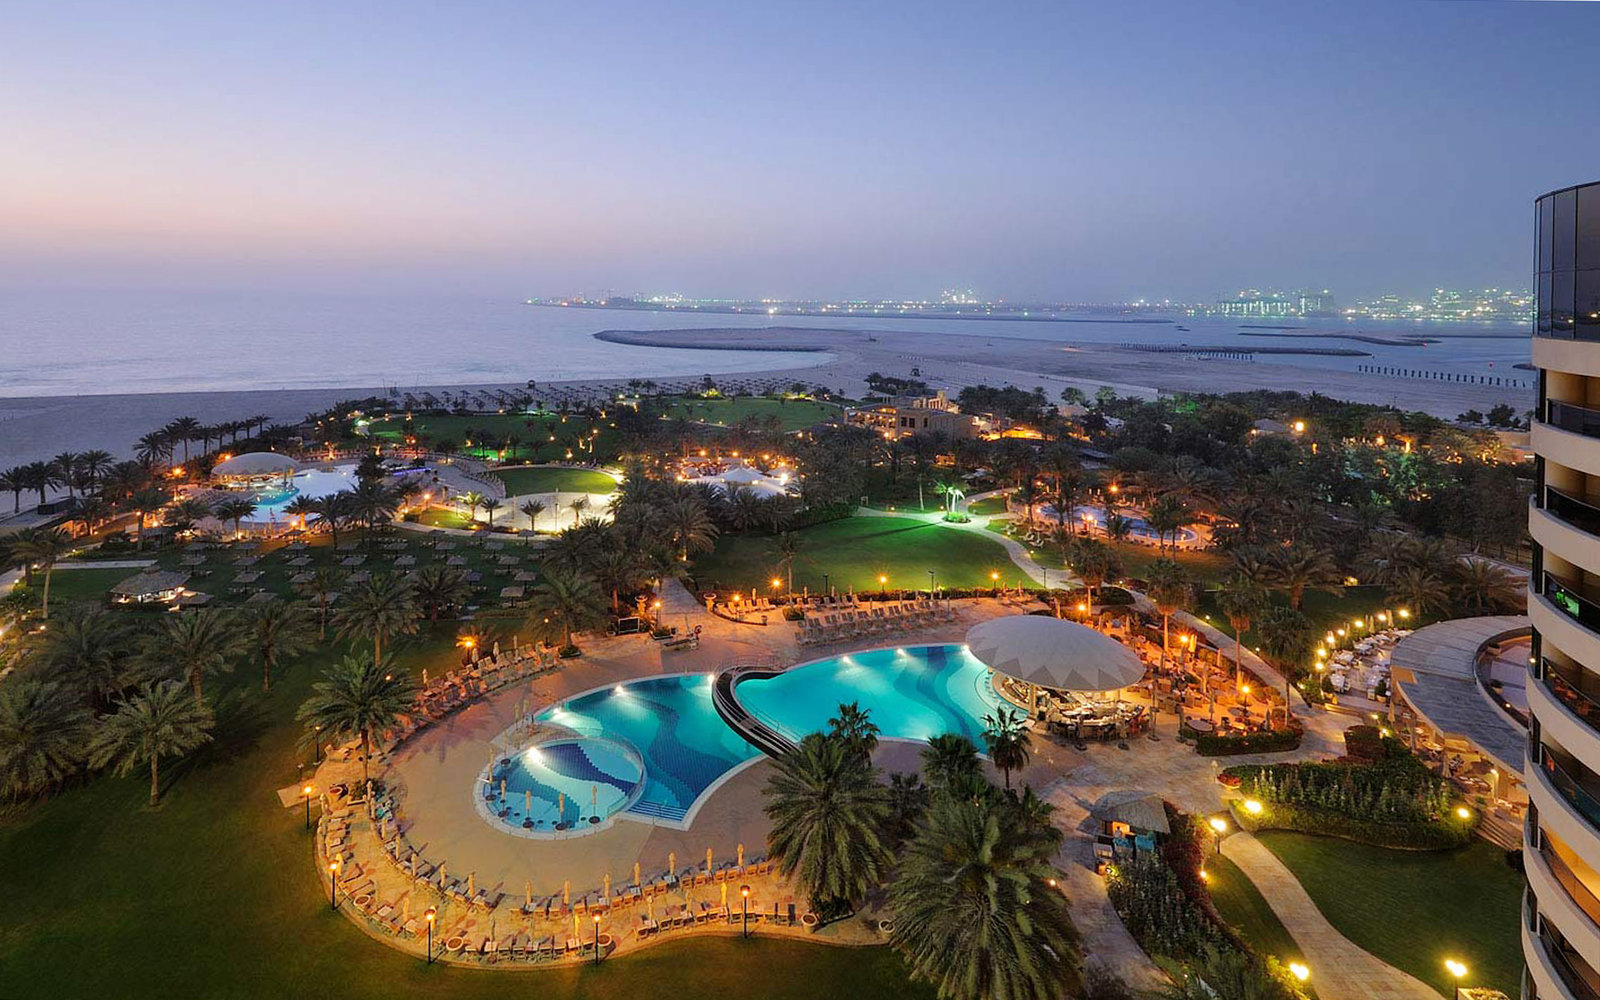 10.	Le Royal Meridien Beach Resort & Spa